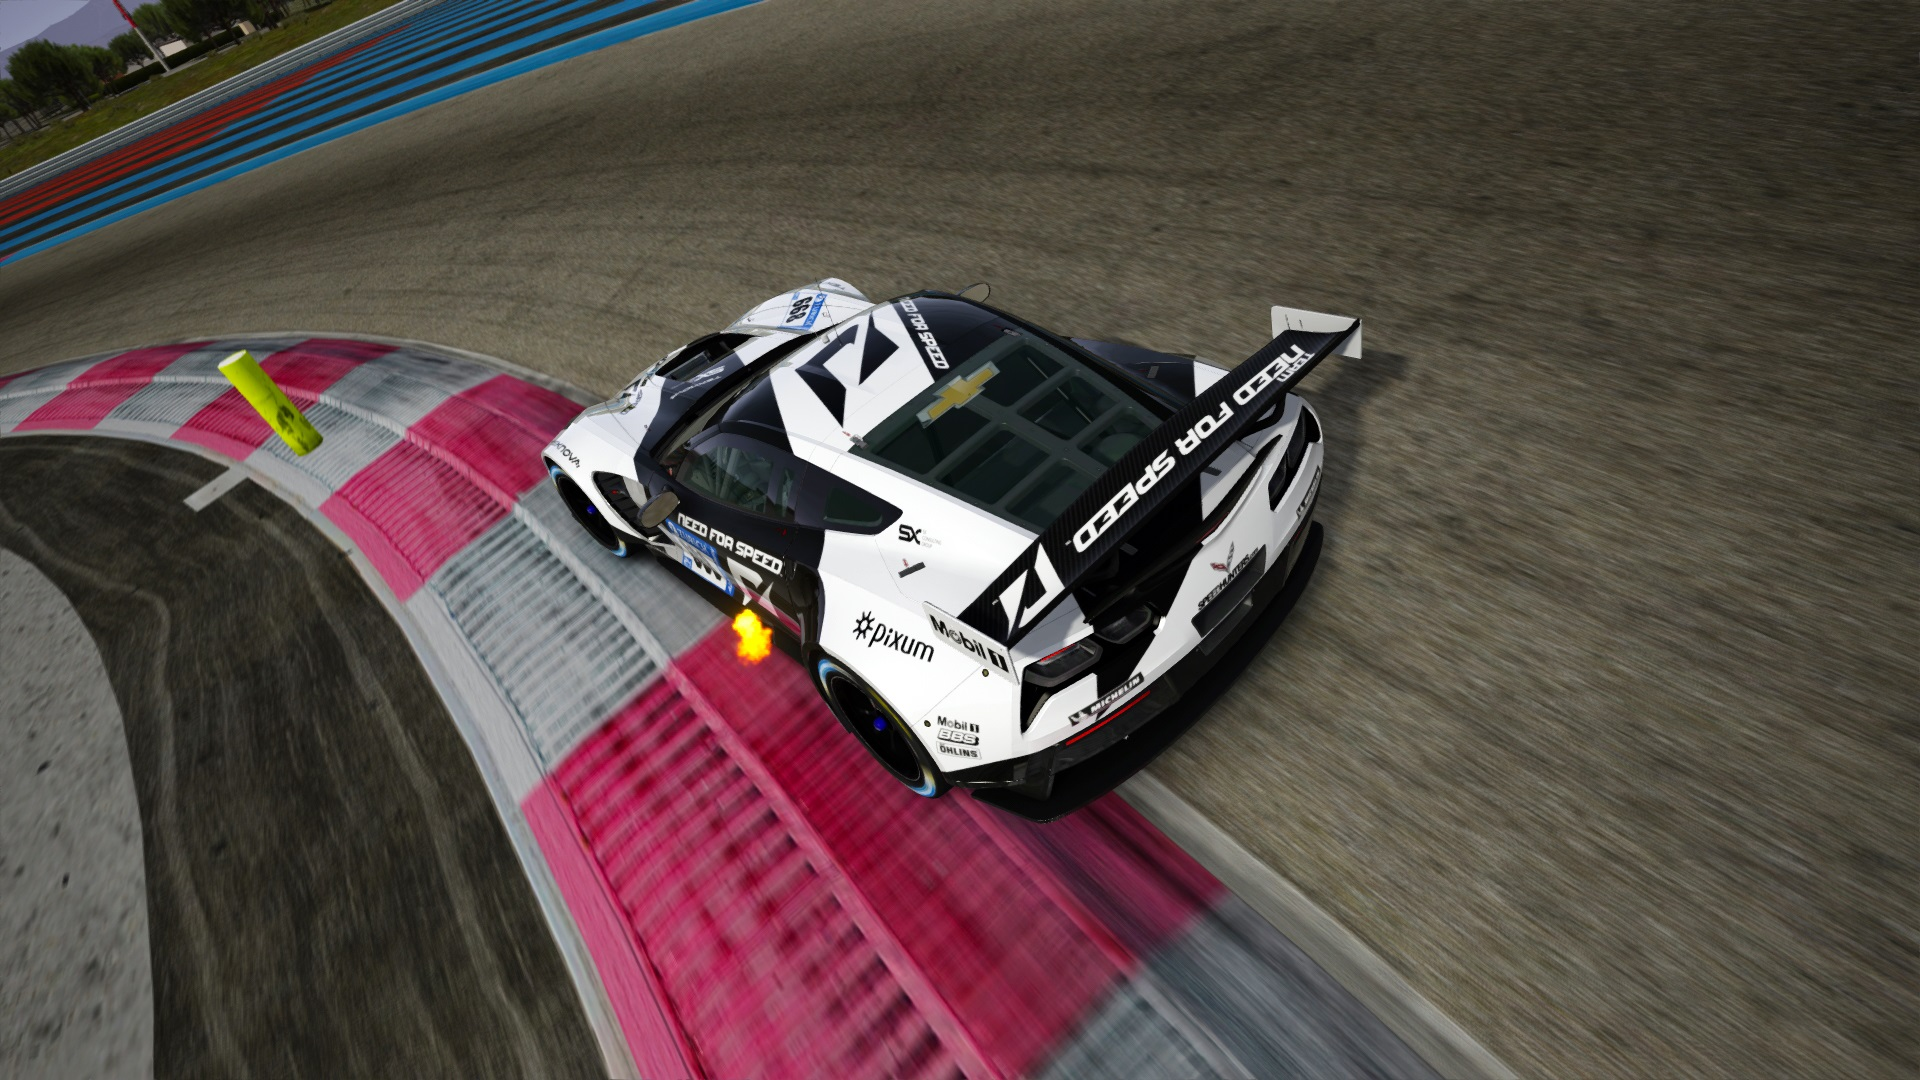 Screenshot_ks_corvette_c7r_paul_ricard_25-7-117-0-58-45.jpg